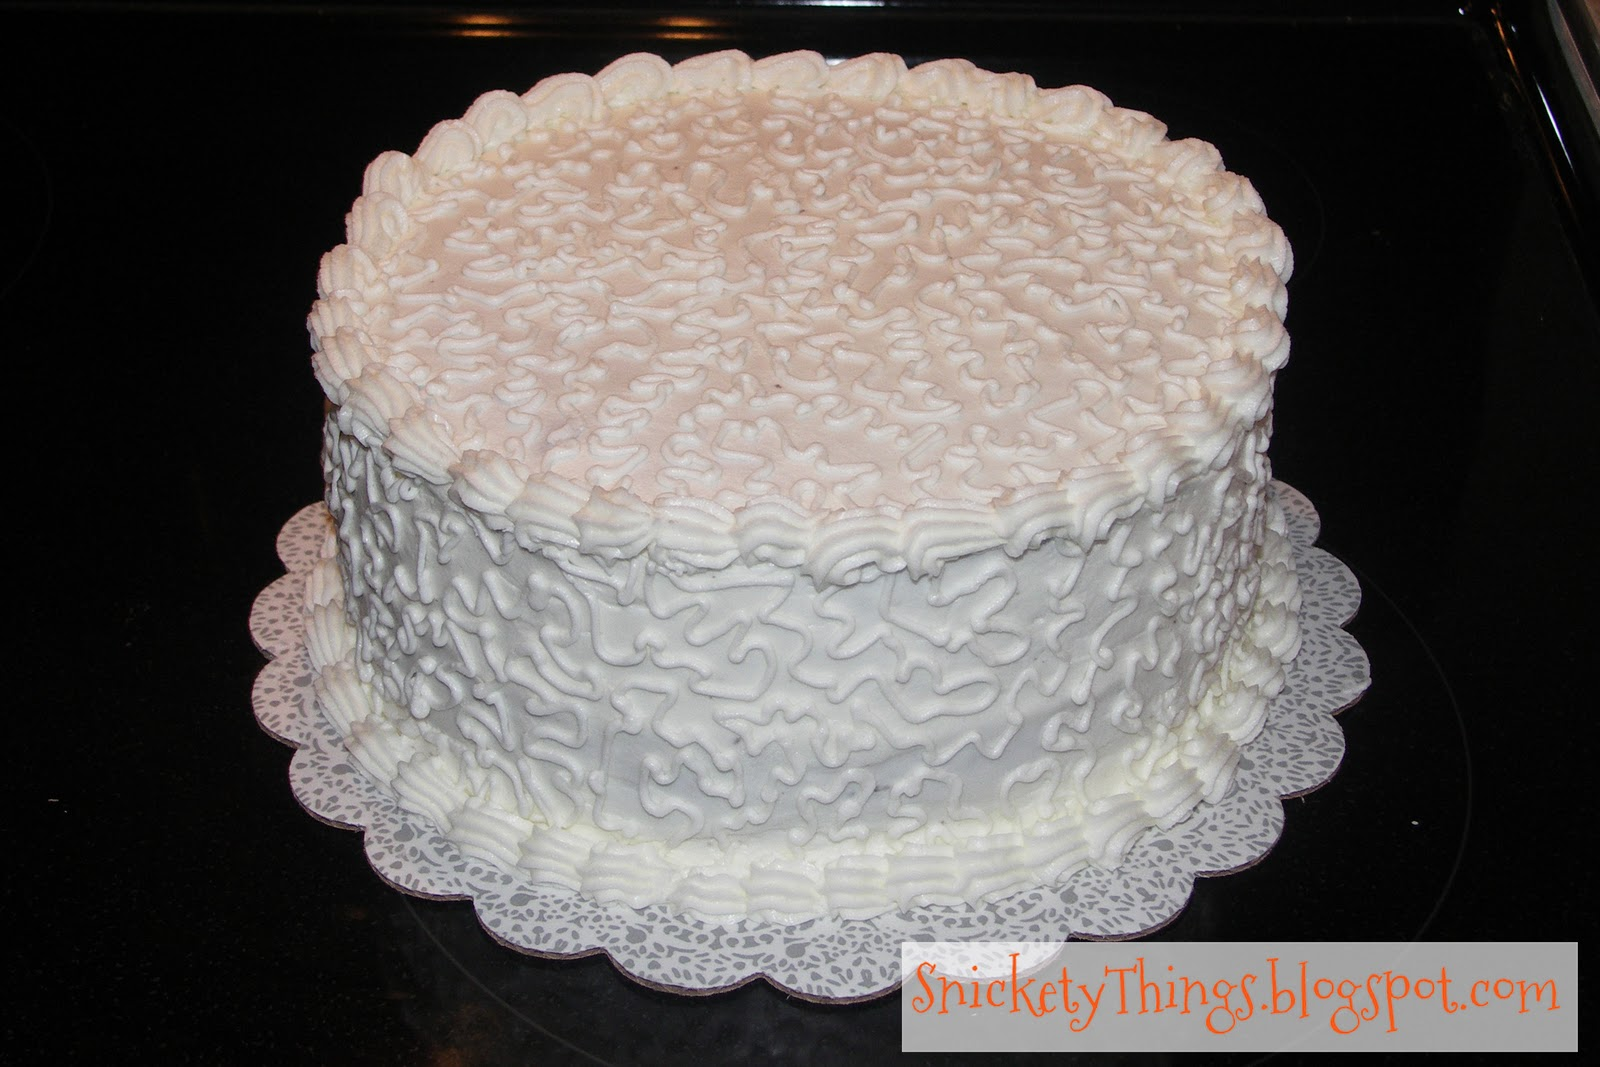 Snickety Things: Adventures in Cake: Cornelli Lace